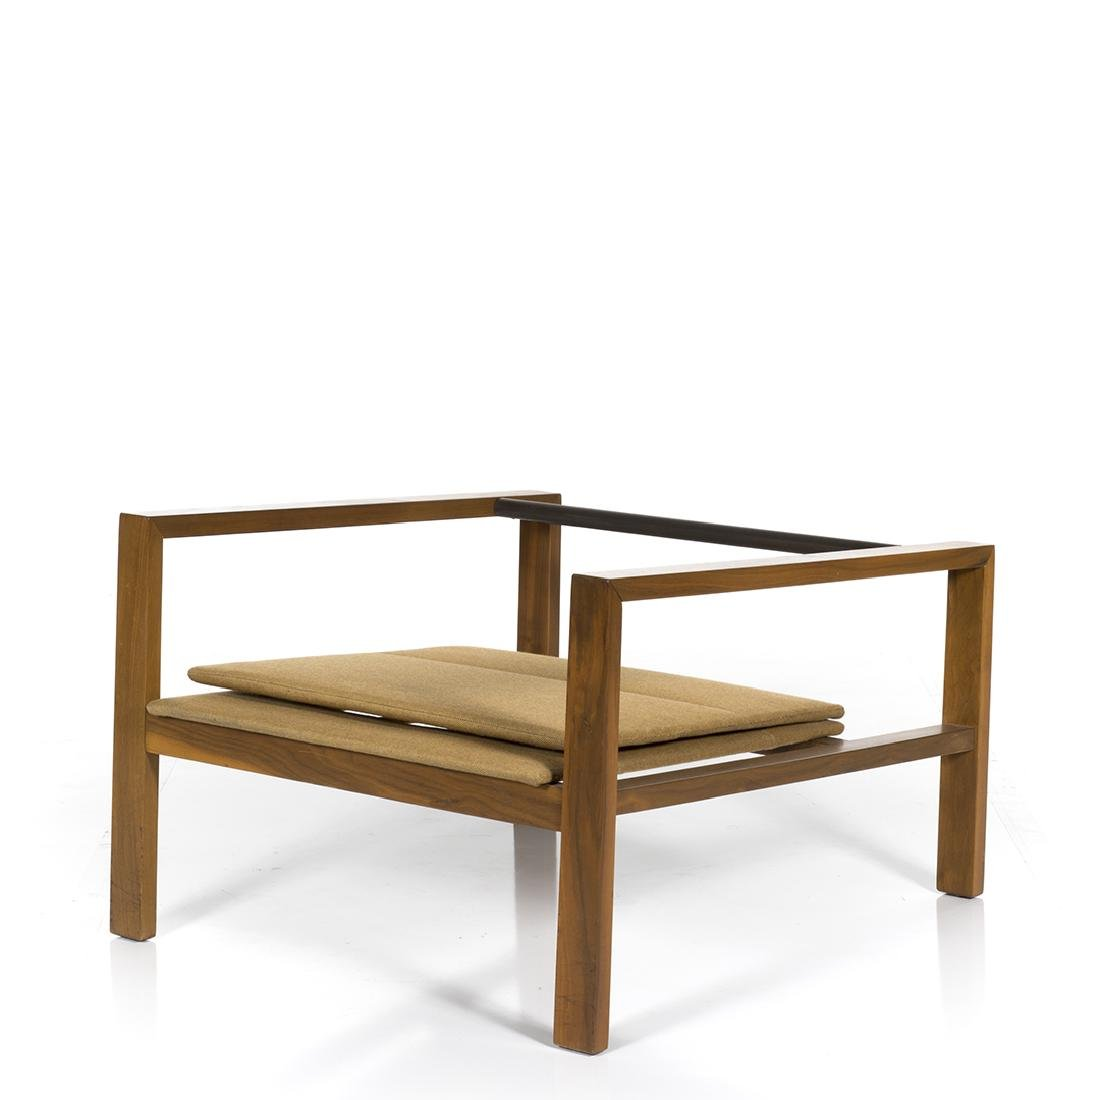 Van Keppel and Green Prototype Lounge Chair - 4